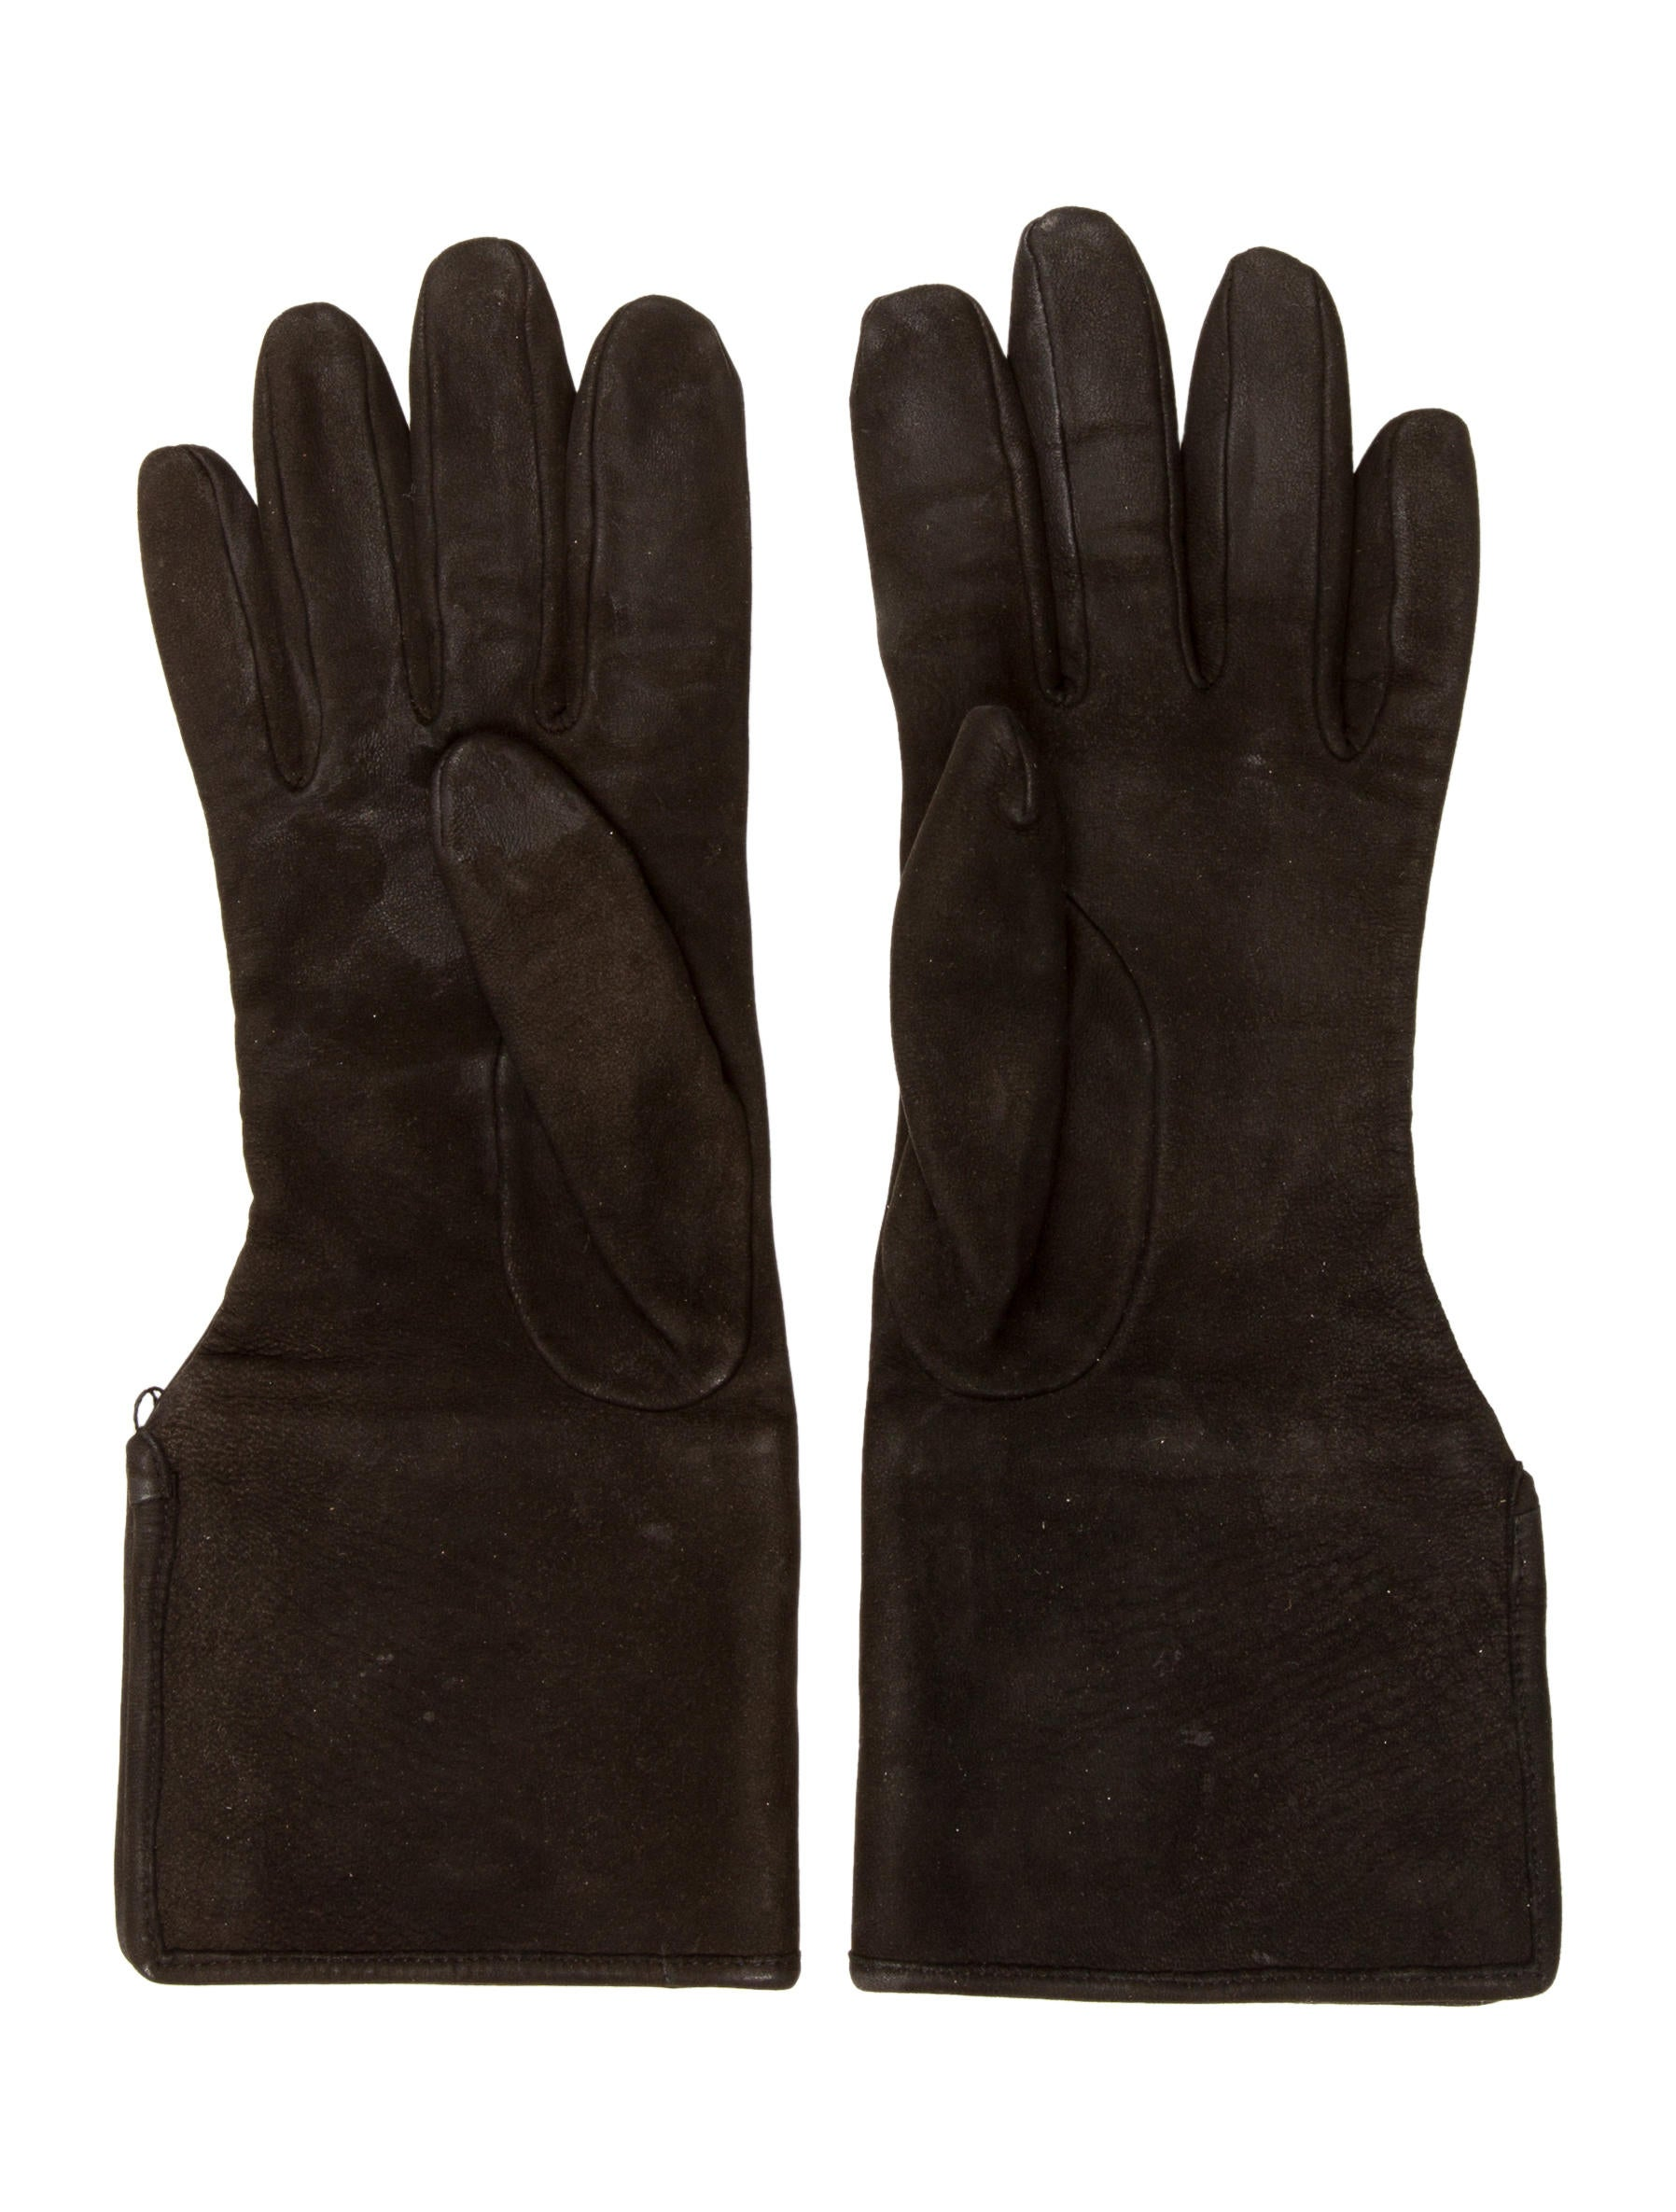 Chanel Suede CC Gloves - Accessories - CHA143293 | The ...